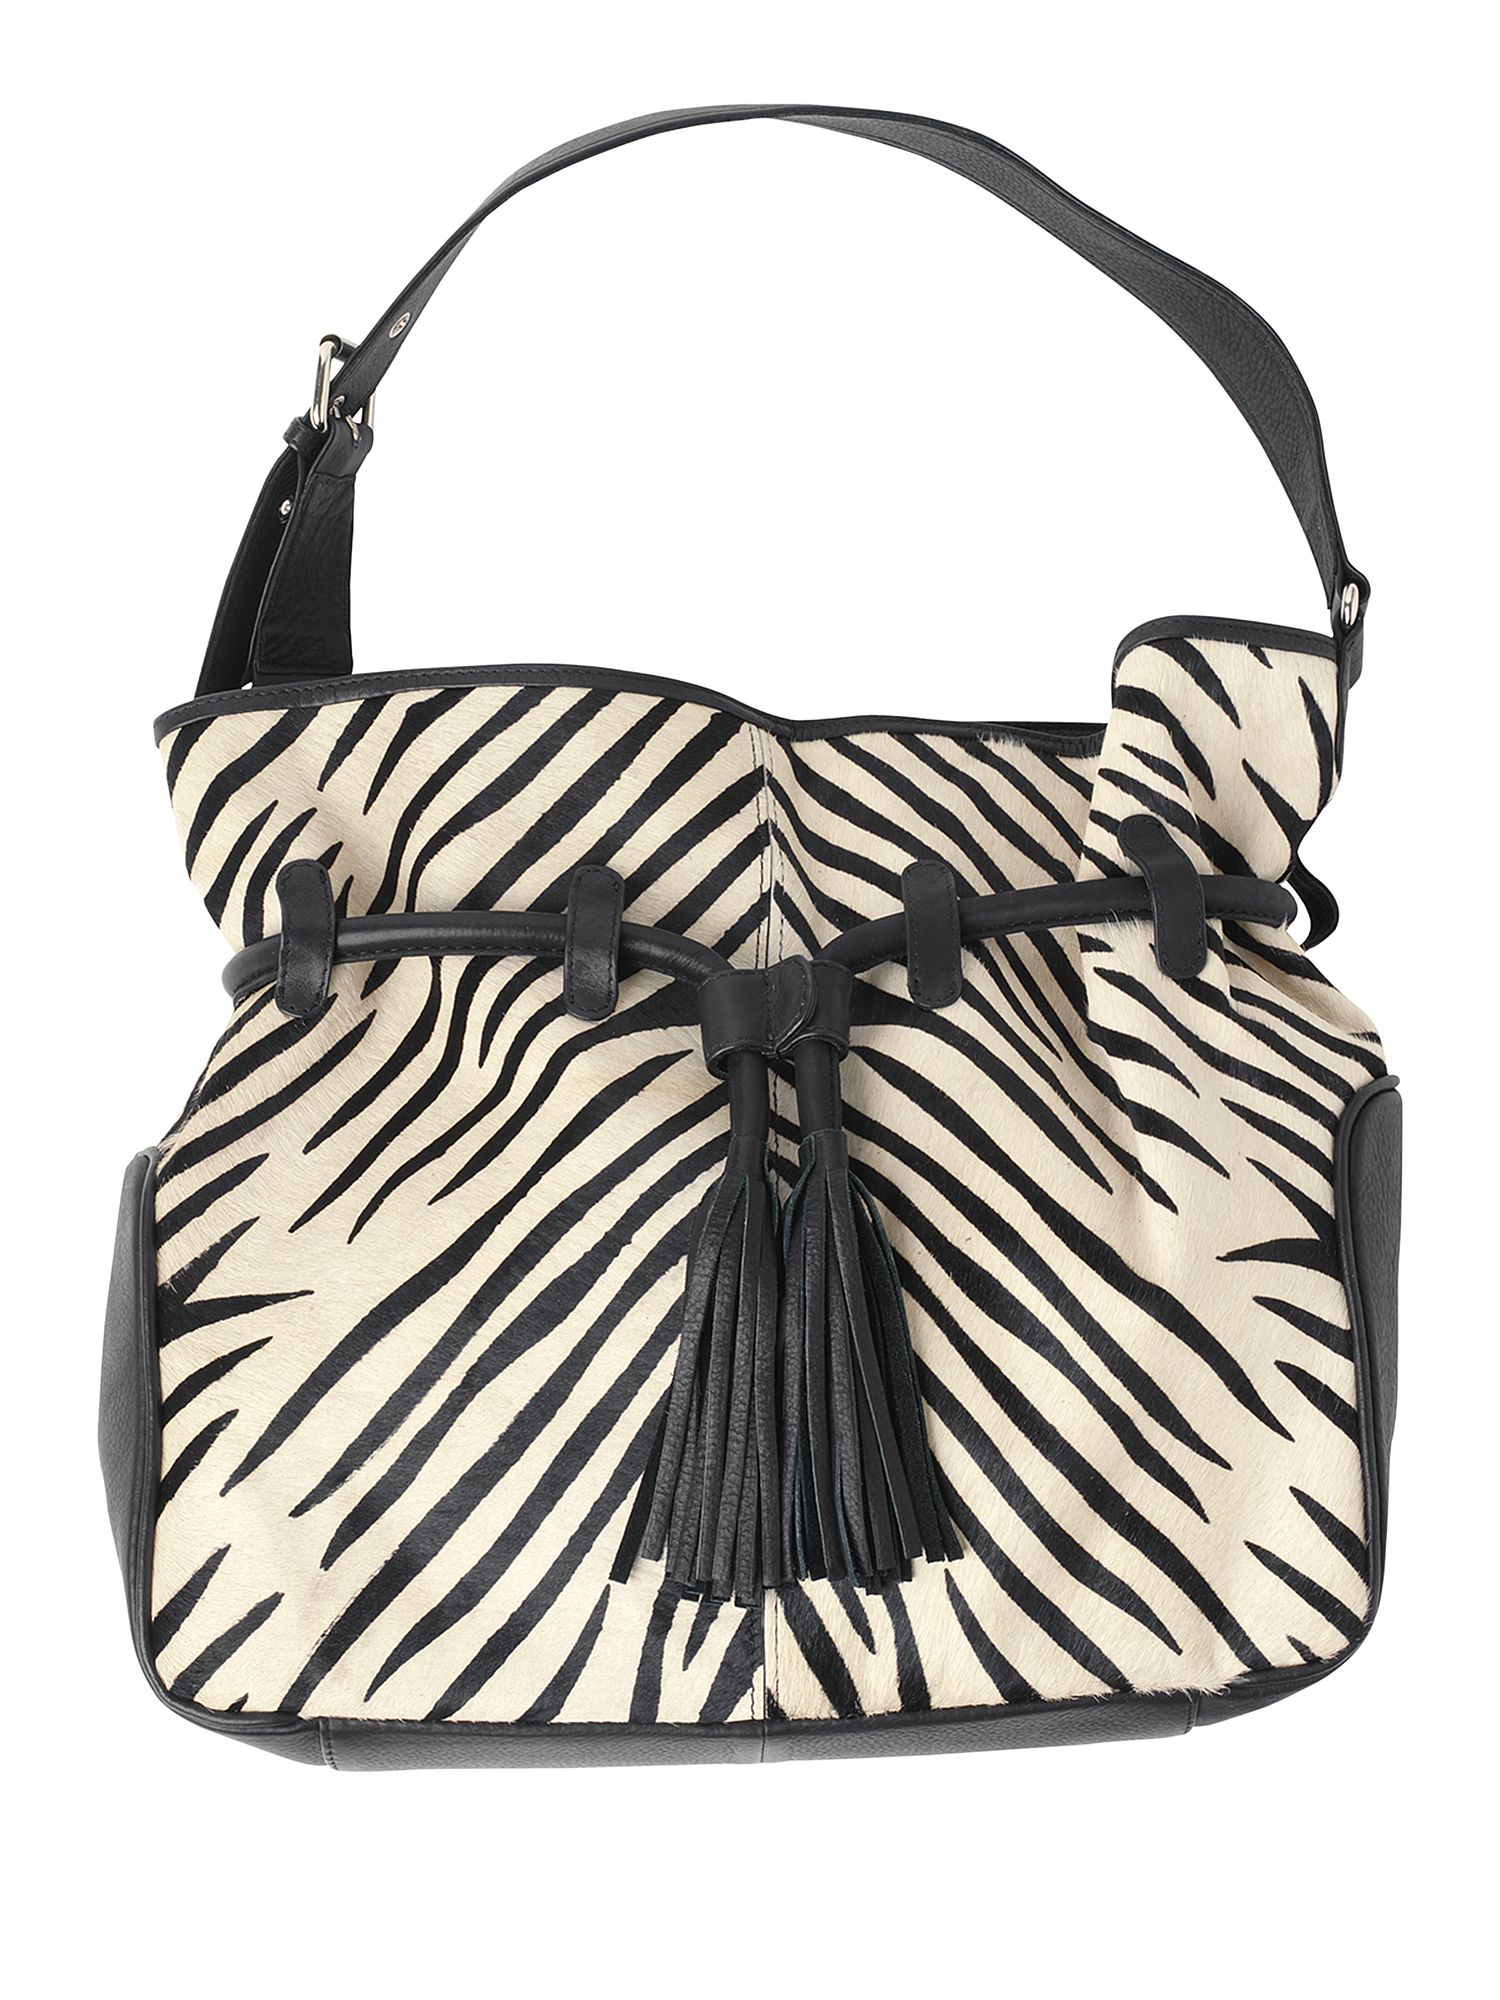 Phase Eight Zebra print hand bag Black product image